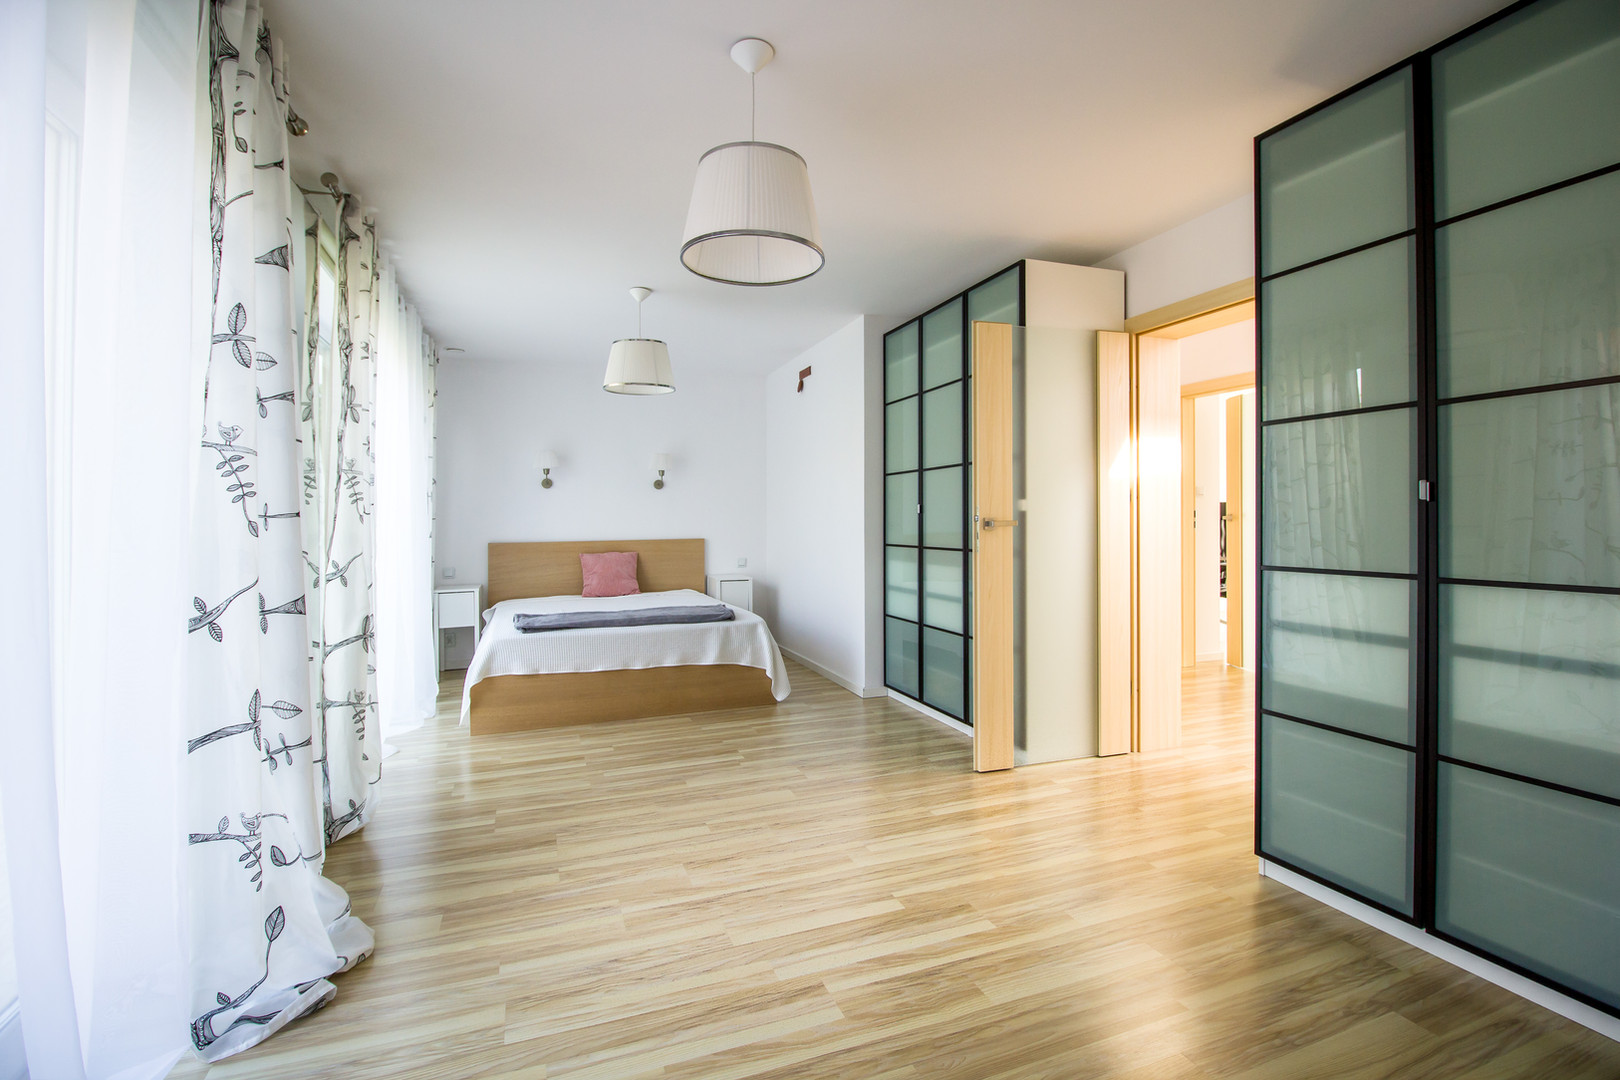 House for rent Poznan Poland (26 of 31).